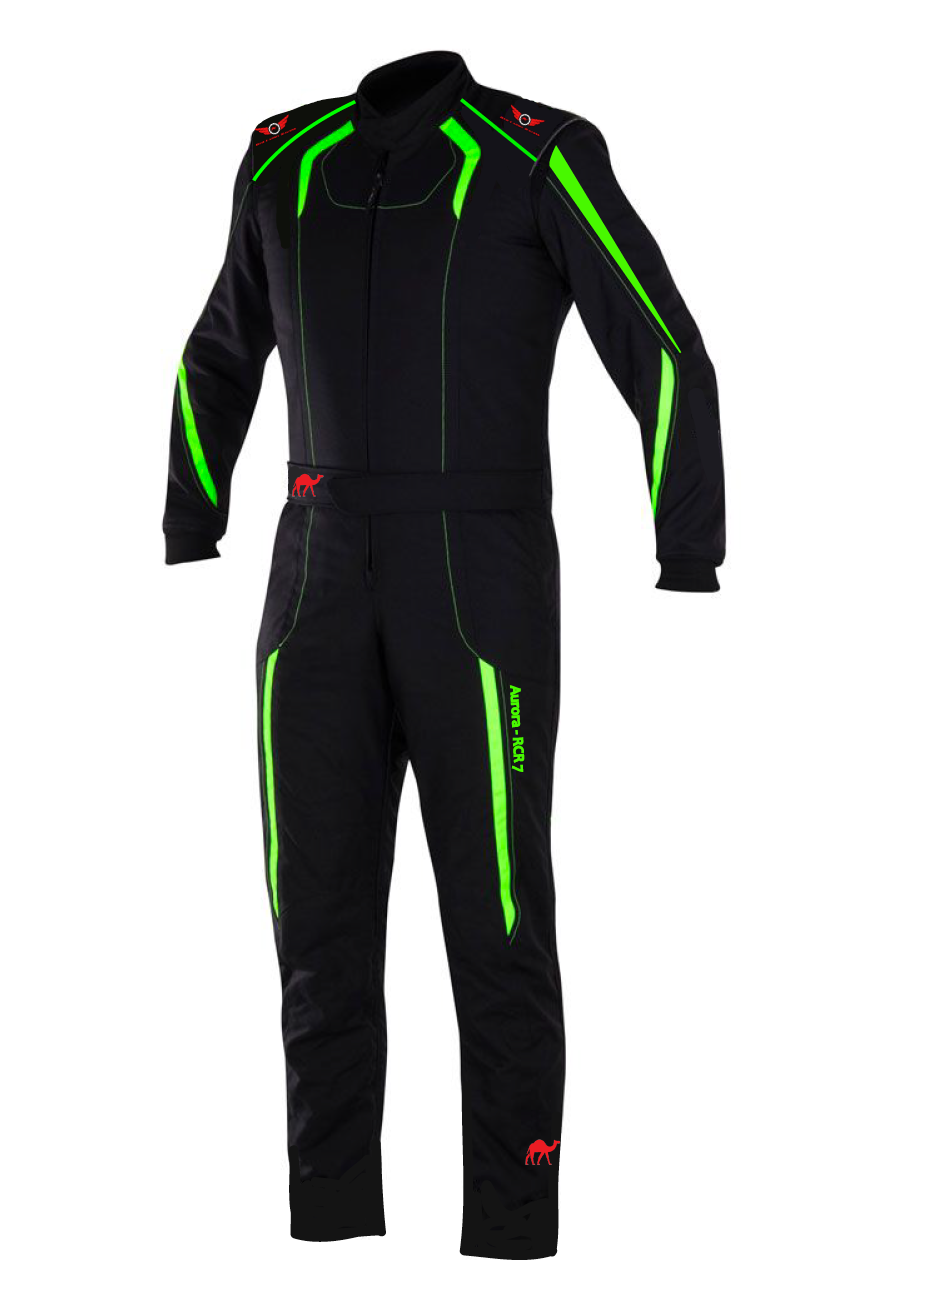 ef90b05e60b2 Aurora- RCR7 Fireproof Suit SFI 3.2A 1 Single Layer Suit